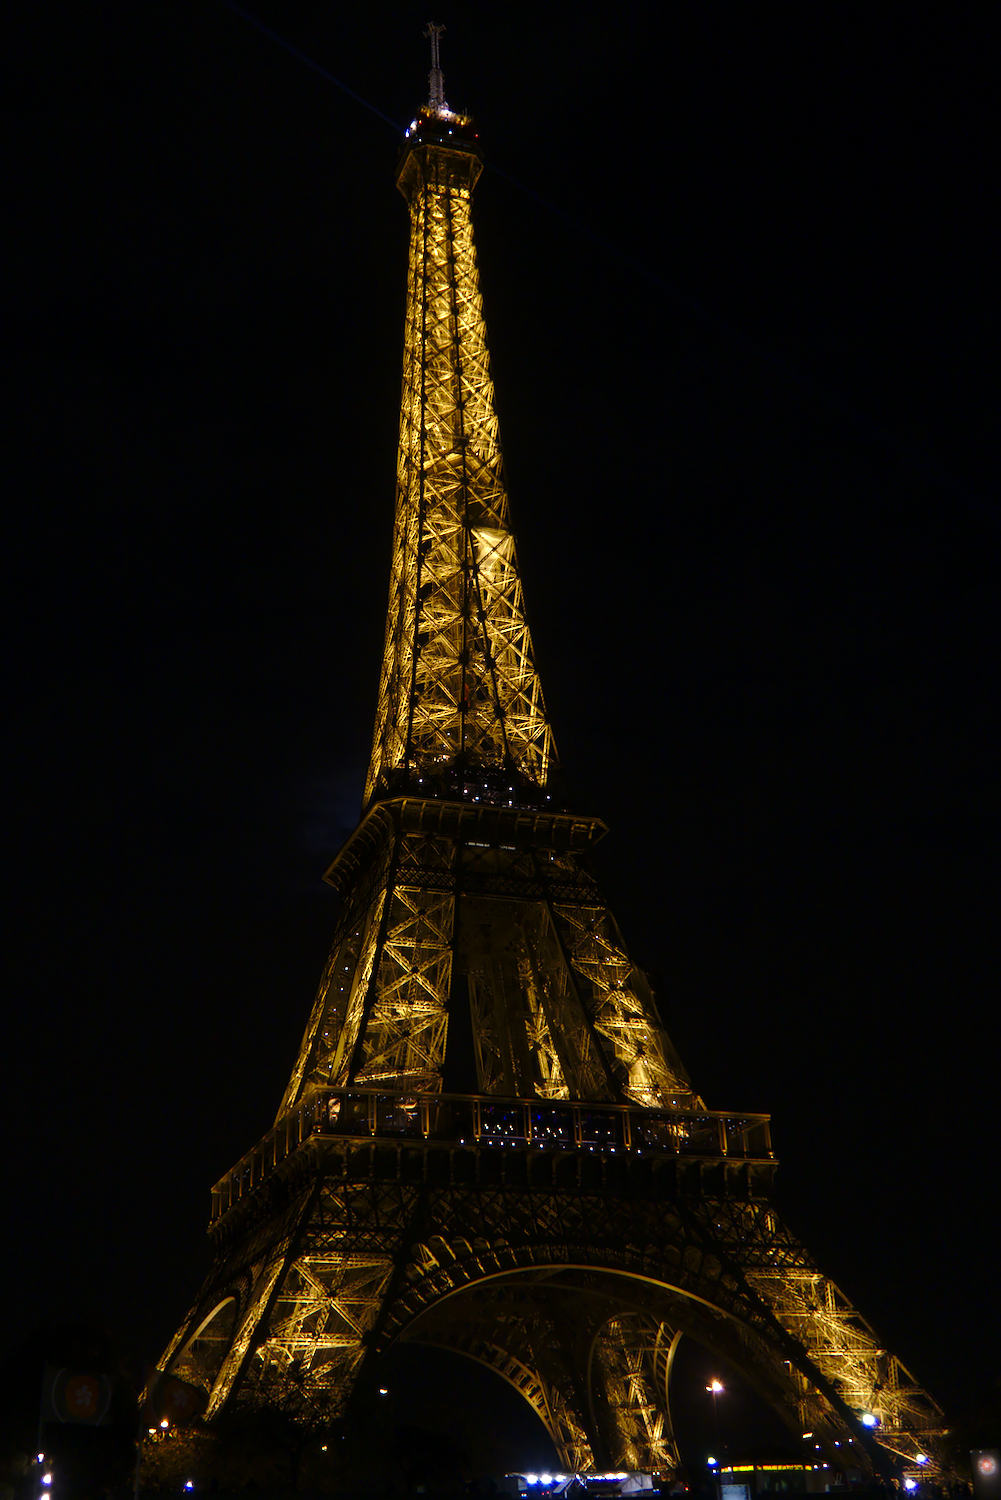 Eiffel Tower from the river at night - Closer